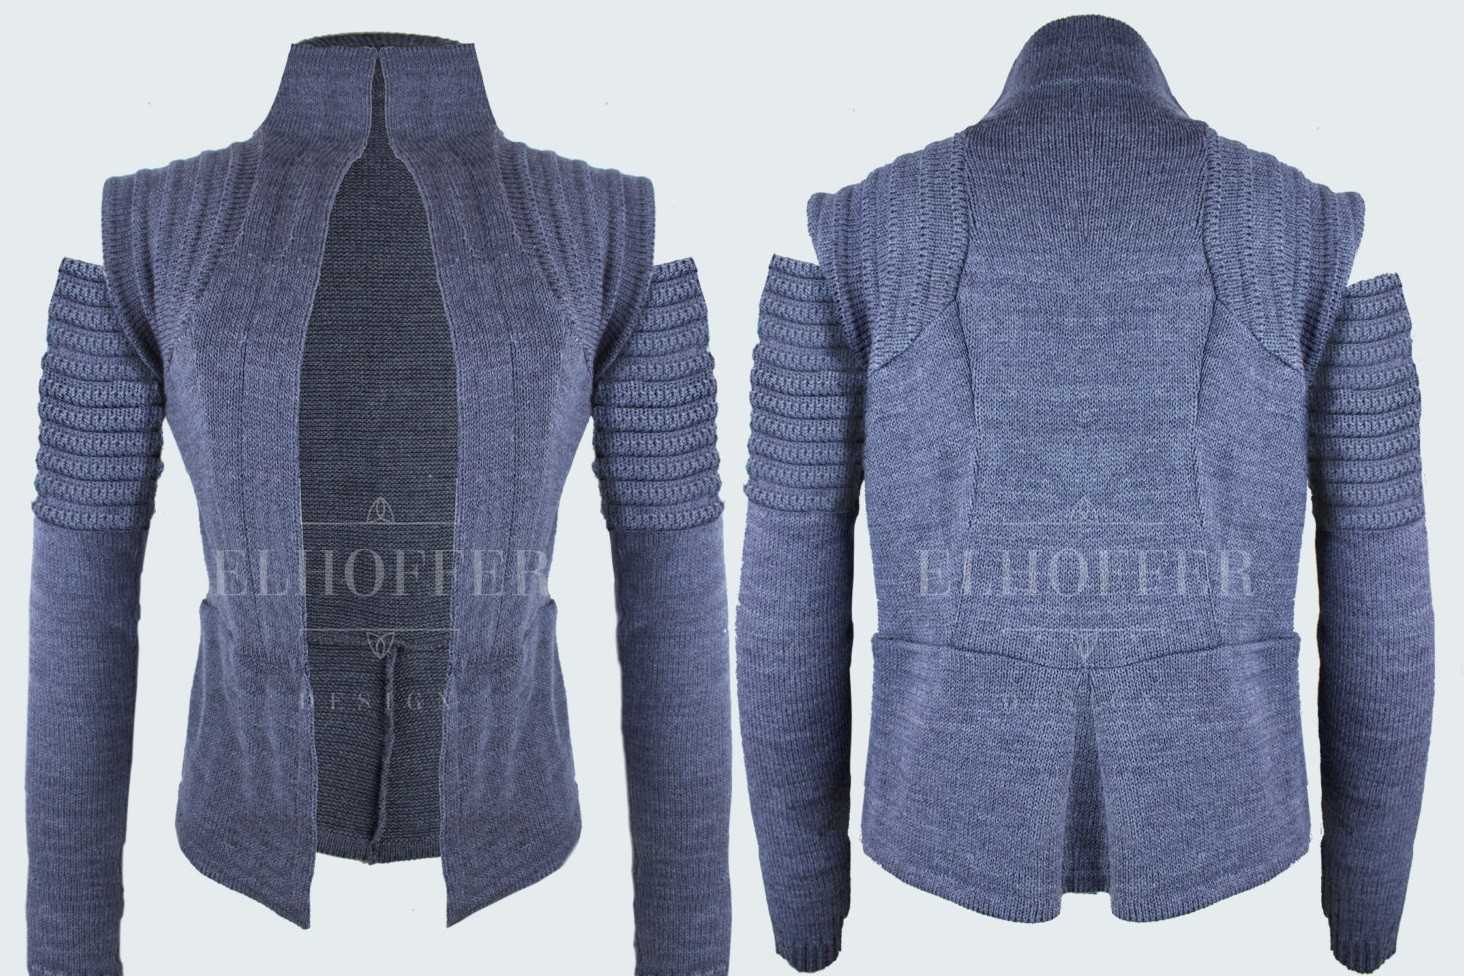 Elhoffer Design - Galactic Scavenger Vest with Arm Warmers (grey)